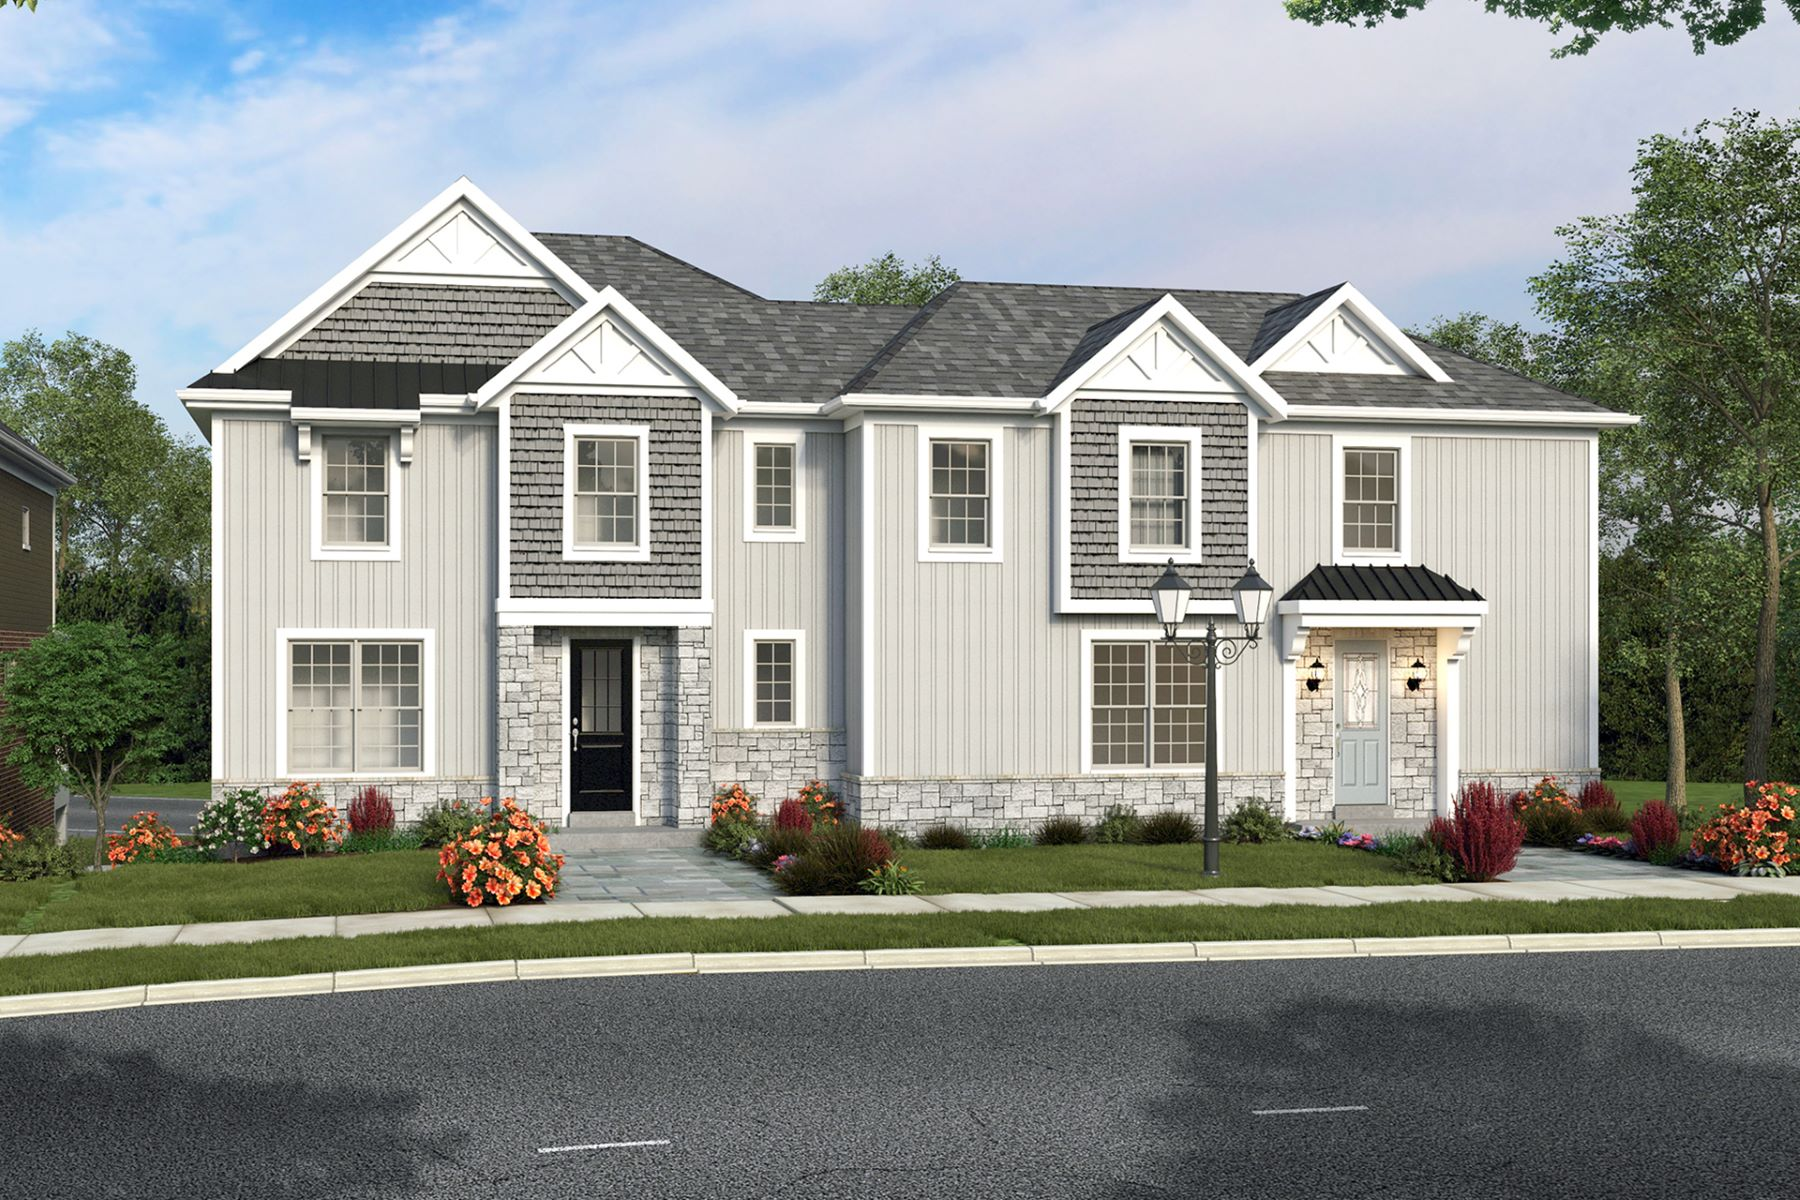 共管式独立产权公寓 为 销售 在 Creekside Pointe - Blue Ash Premier Lifestyle Community 9312 Old Plainfield Rd Blue Ash, 俄亥俄州 45236 美国